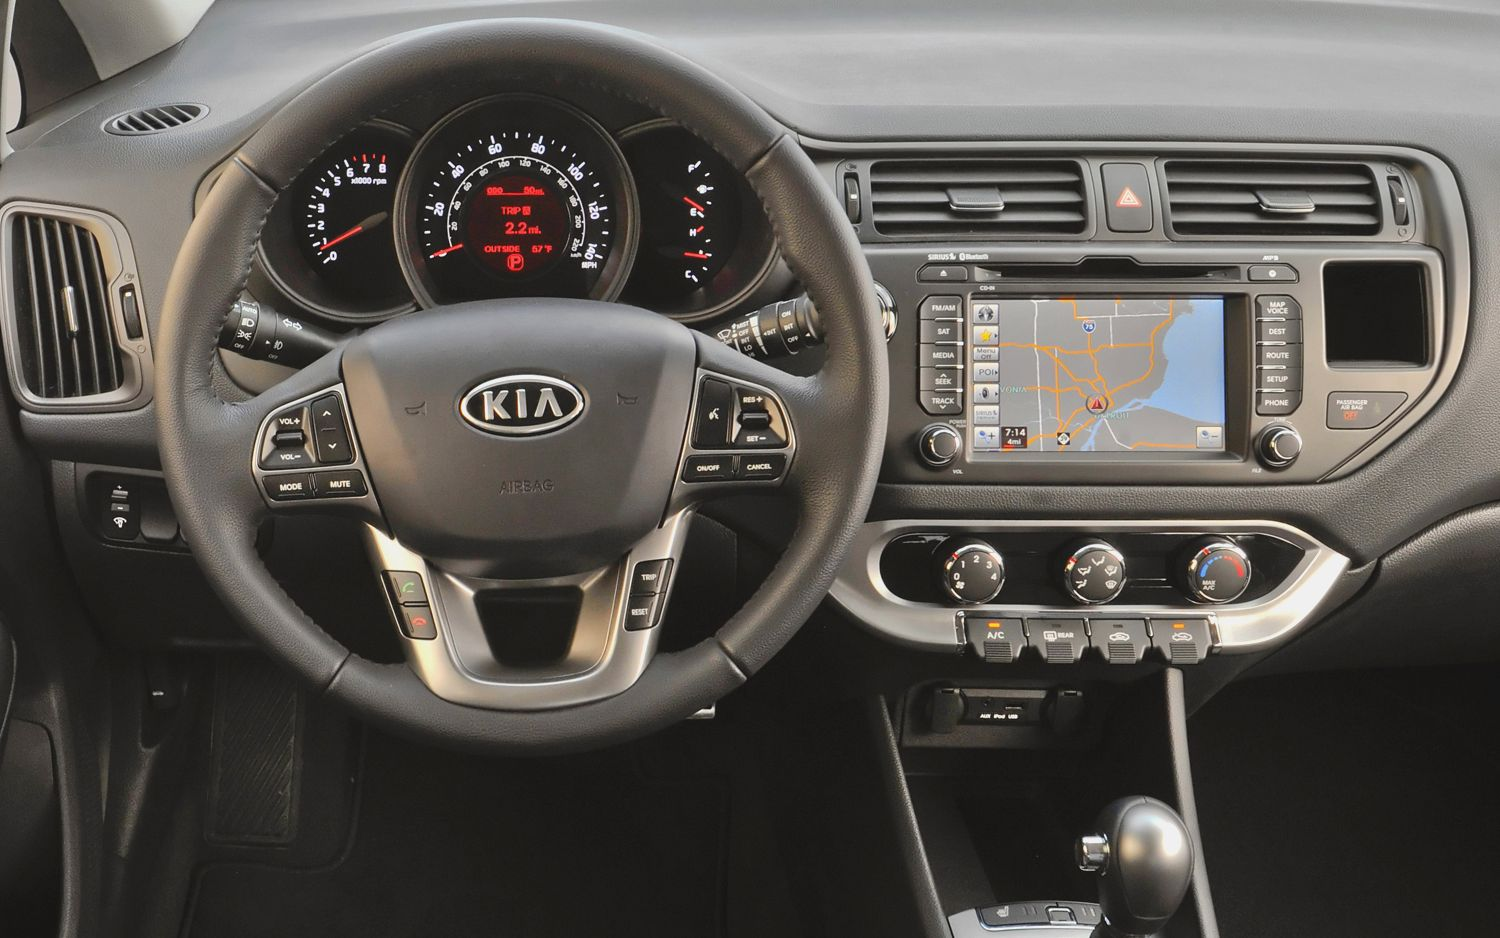 astonishing-design-of-the-black-dash-ideas-with-black-and-silver-steering-wheels-ideas-as-the-kia-rio-2015-interior